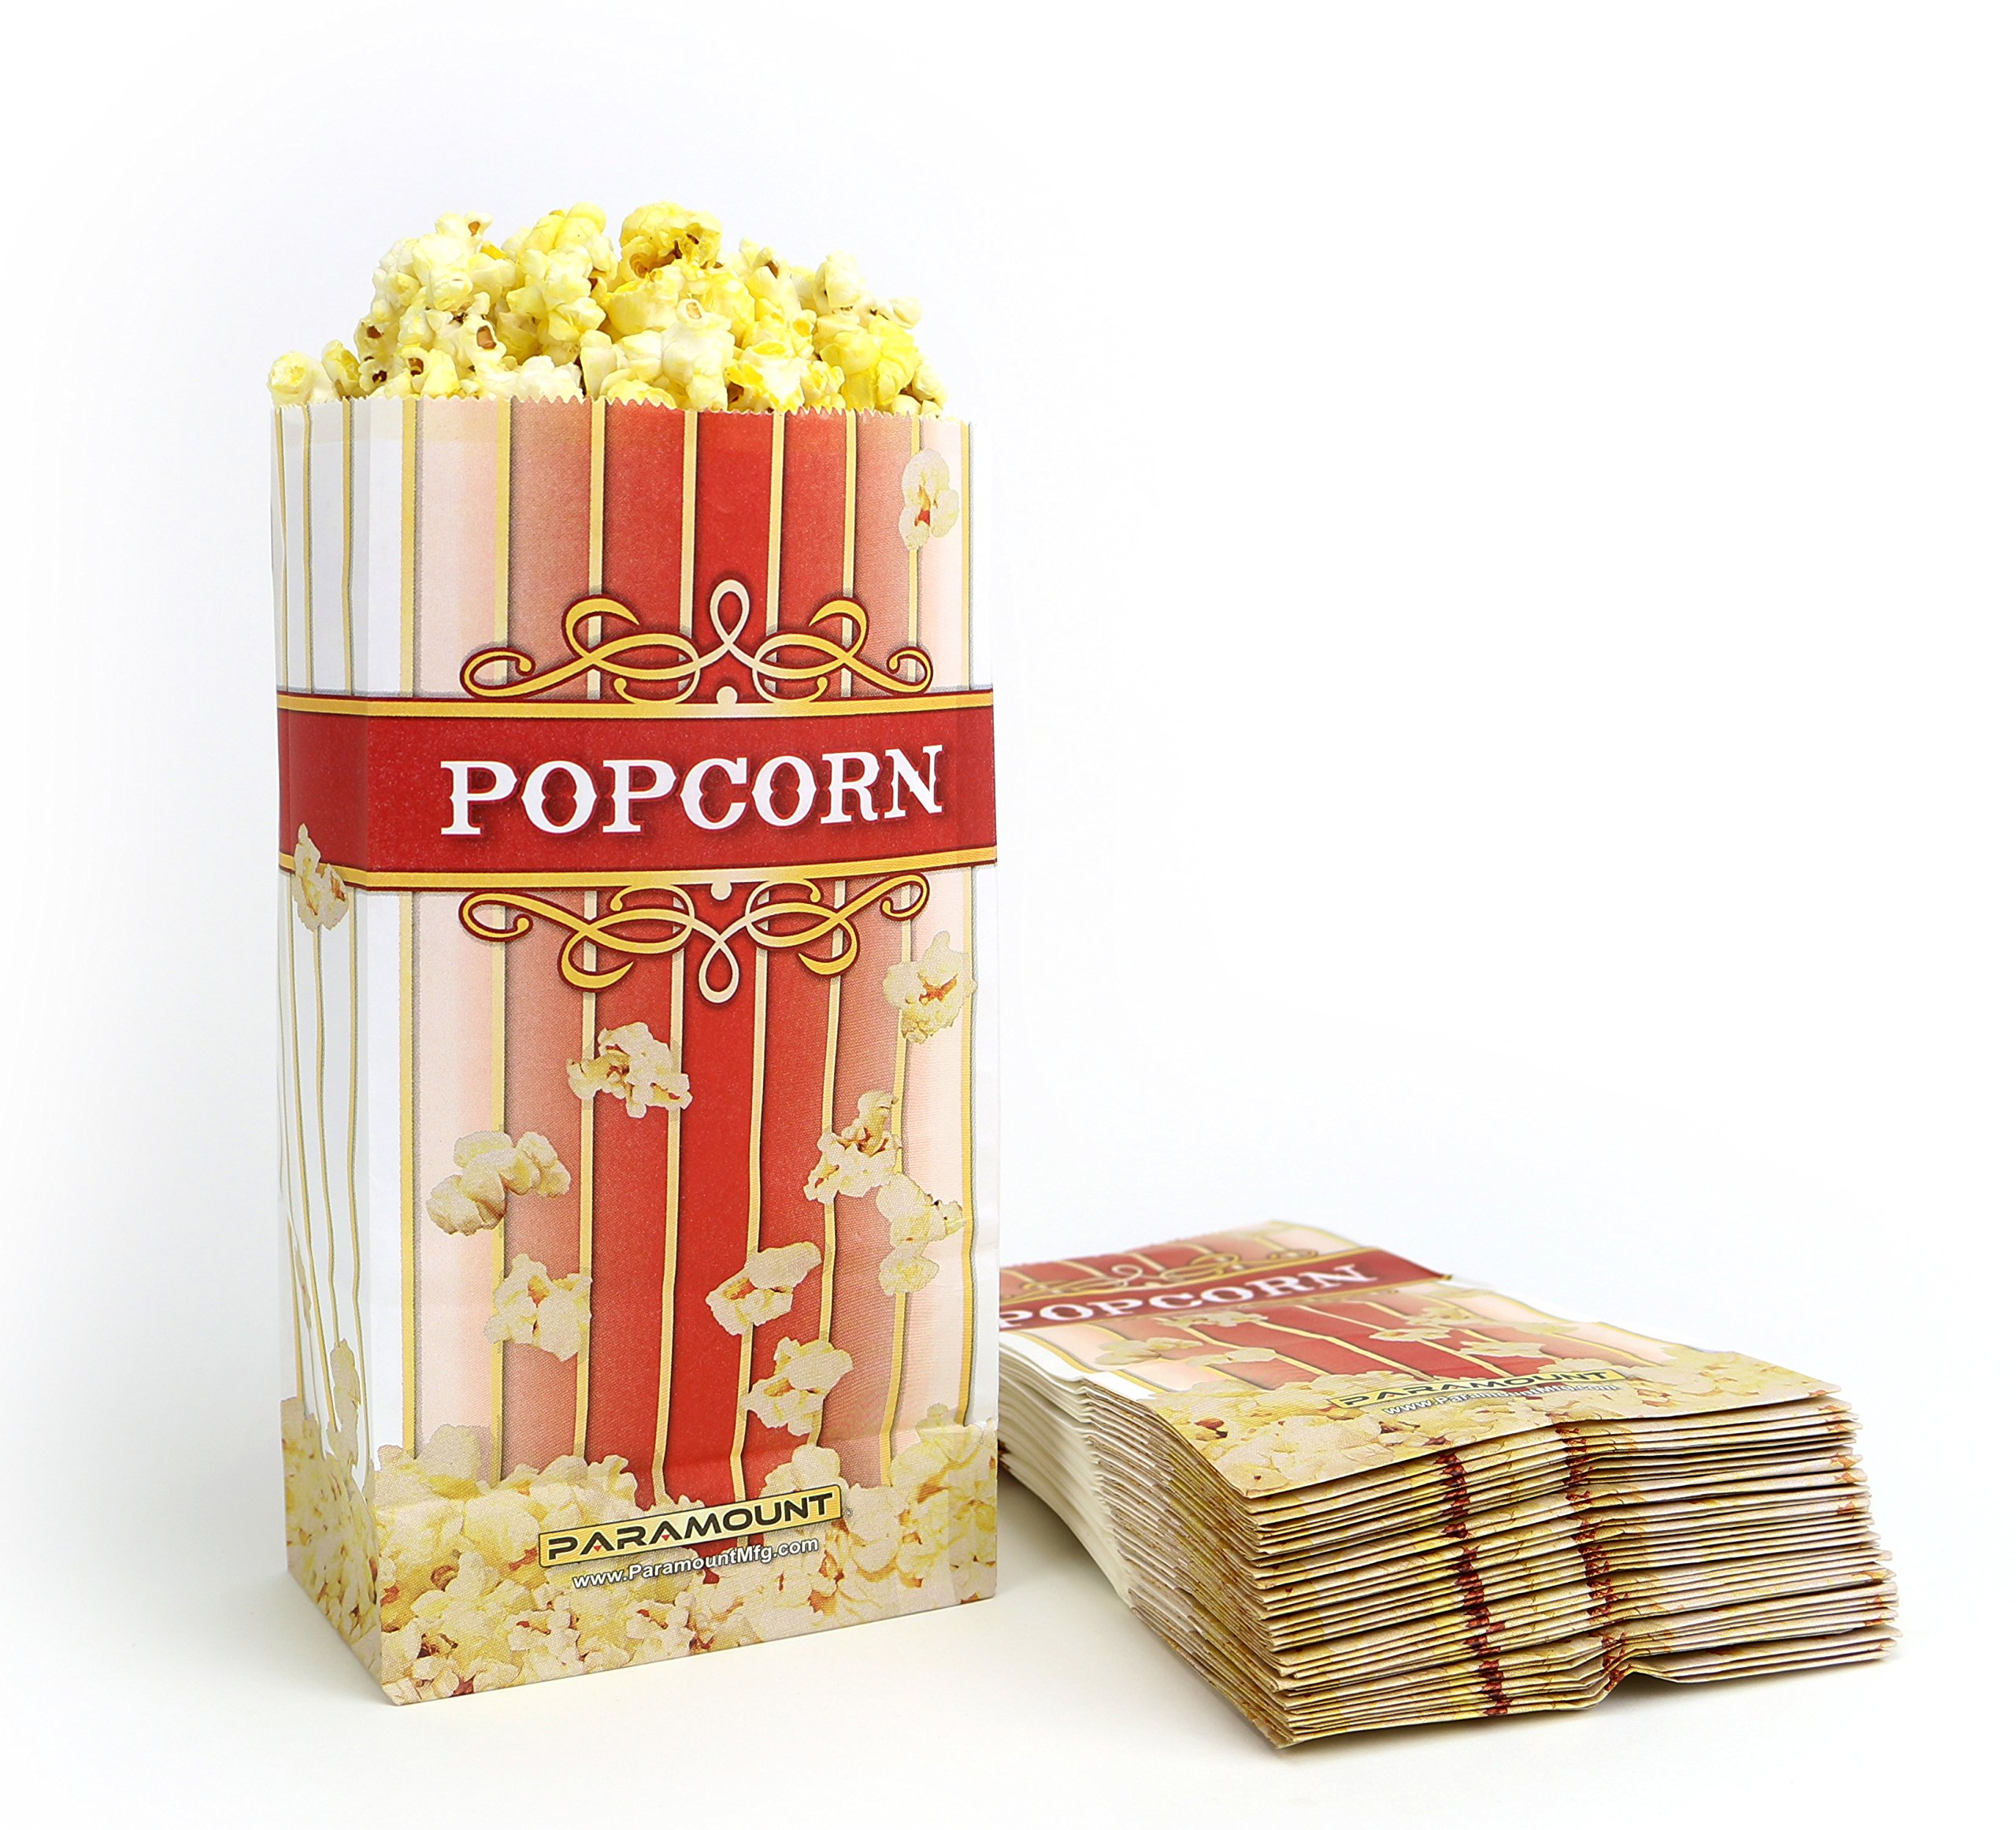 500 Popcorn Serving Bags - 'Large' Standalone Flat Bottom Paper Bag Style